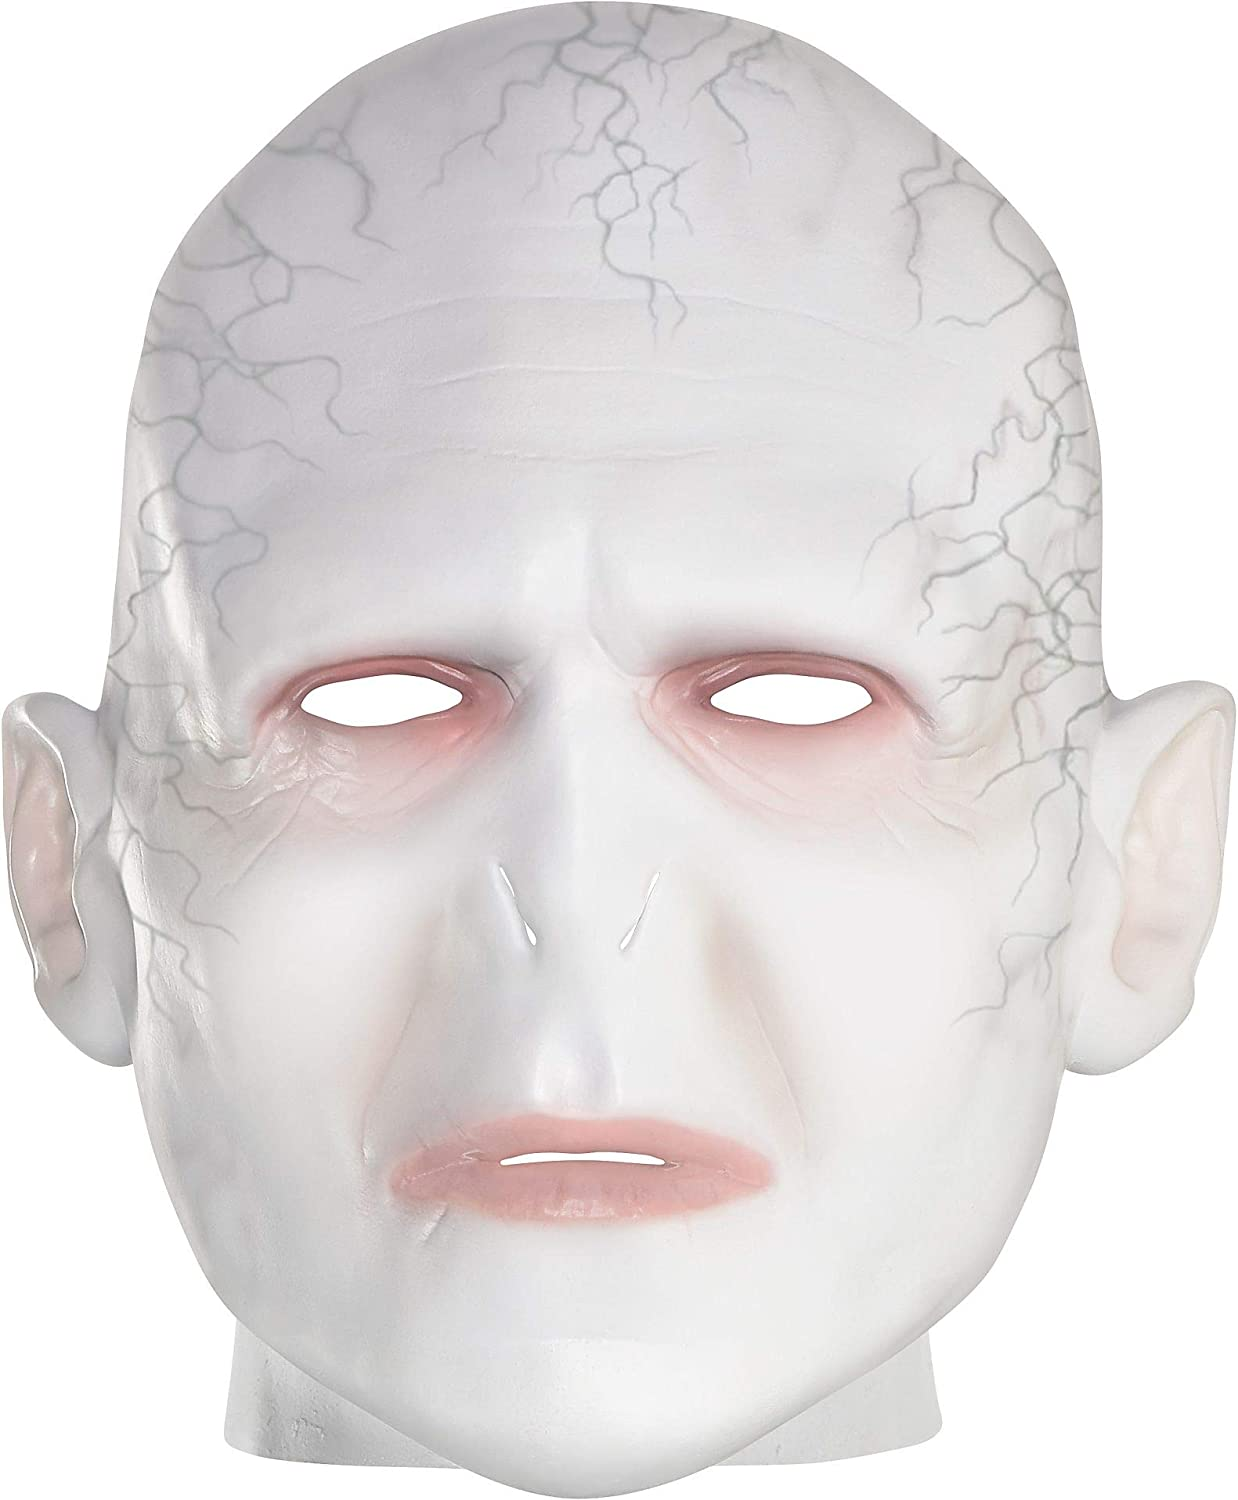 Harry Potter Suit Yourself Voldemort Mask for Adults Latex One Size Halloween Costume Accessory